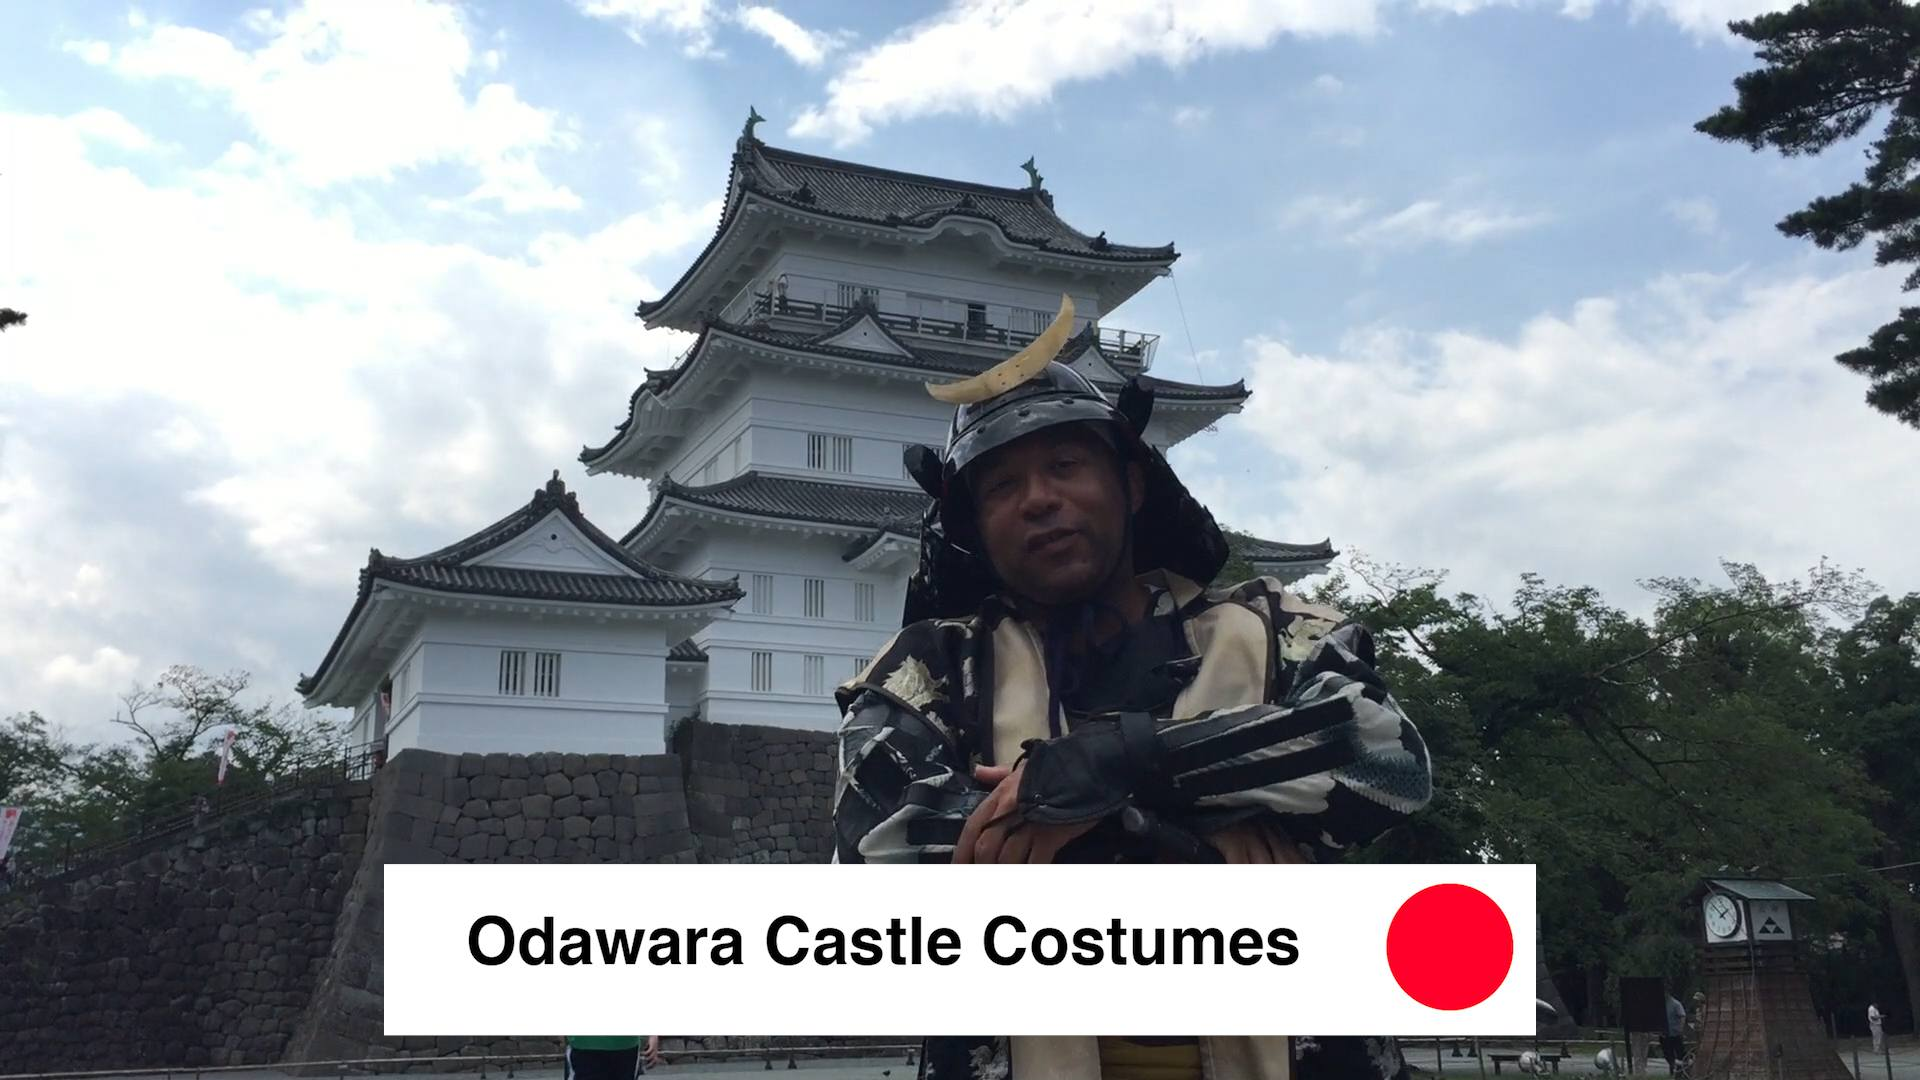 Odawara Castle Costumes - Odawara Castle Japan Guide Review Video - 9 Reasons To See Odawara Castle Kanagawa Japan 🇯🇵 🏯 🌸